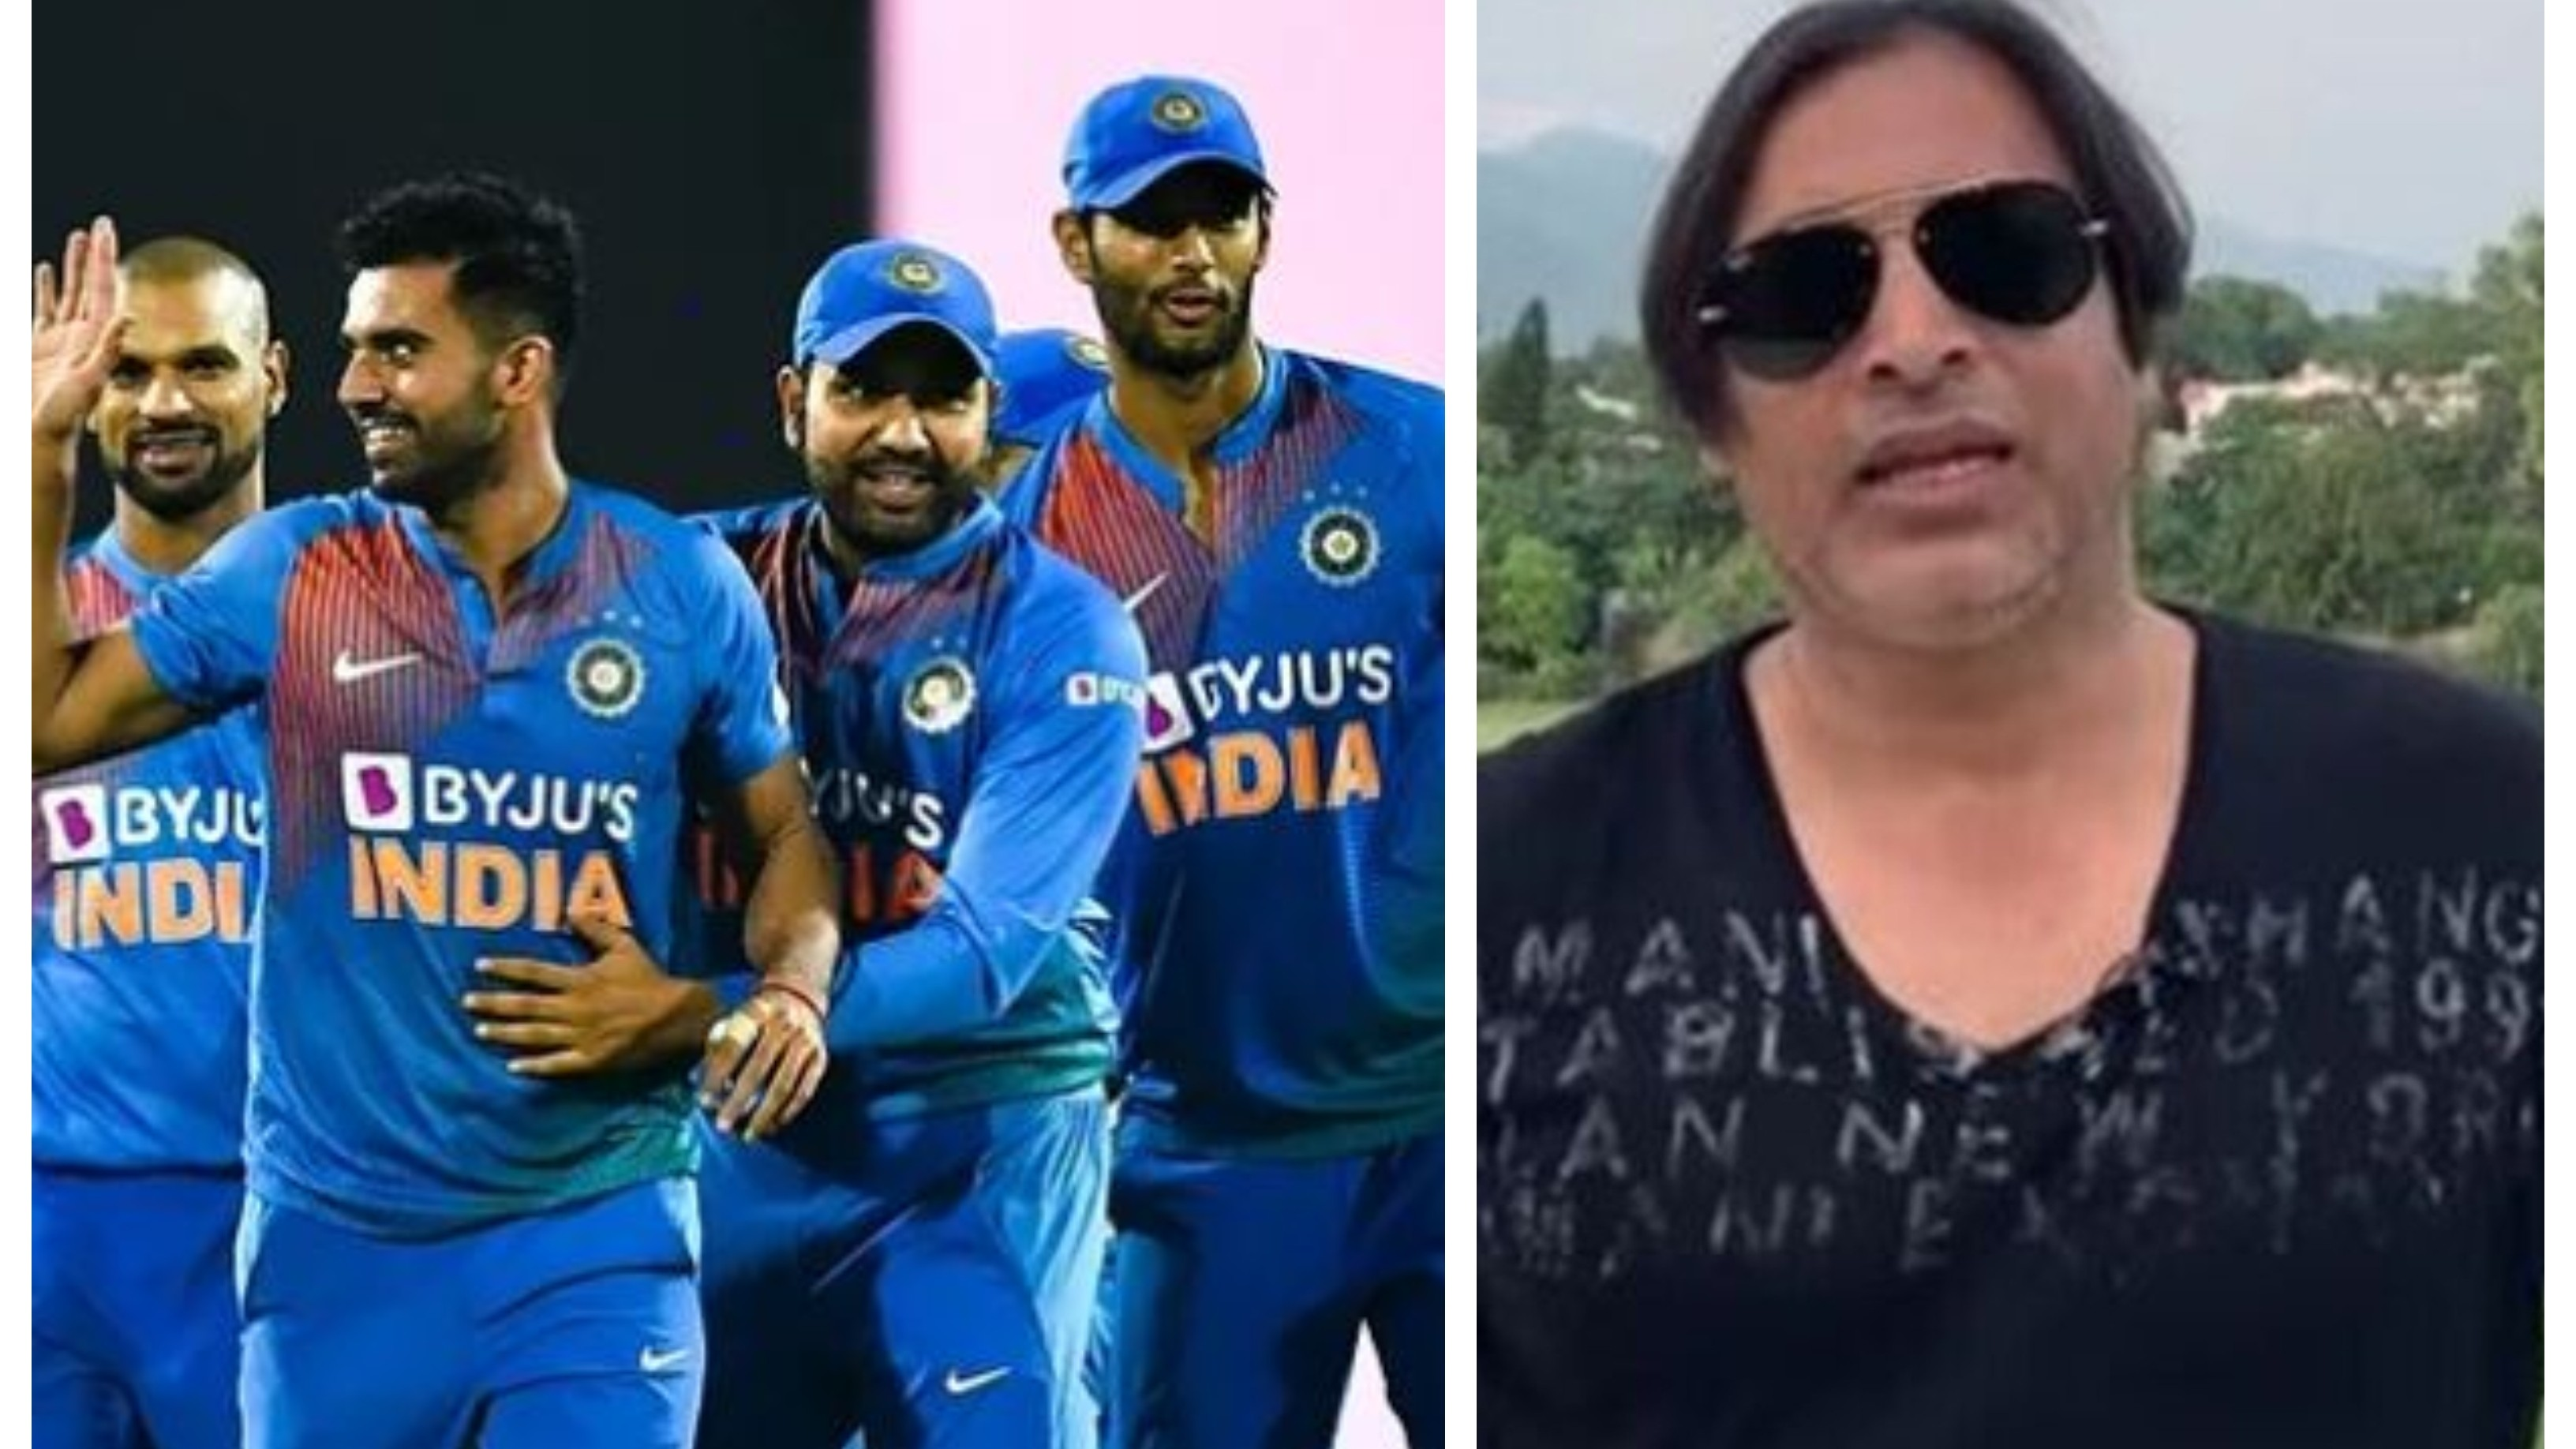 IND v BAN 2019: WATCH - Shoaib Akhtar hails Team India's clinical comeback and T20I series victory